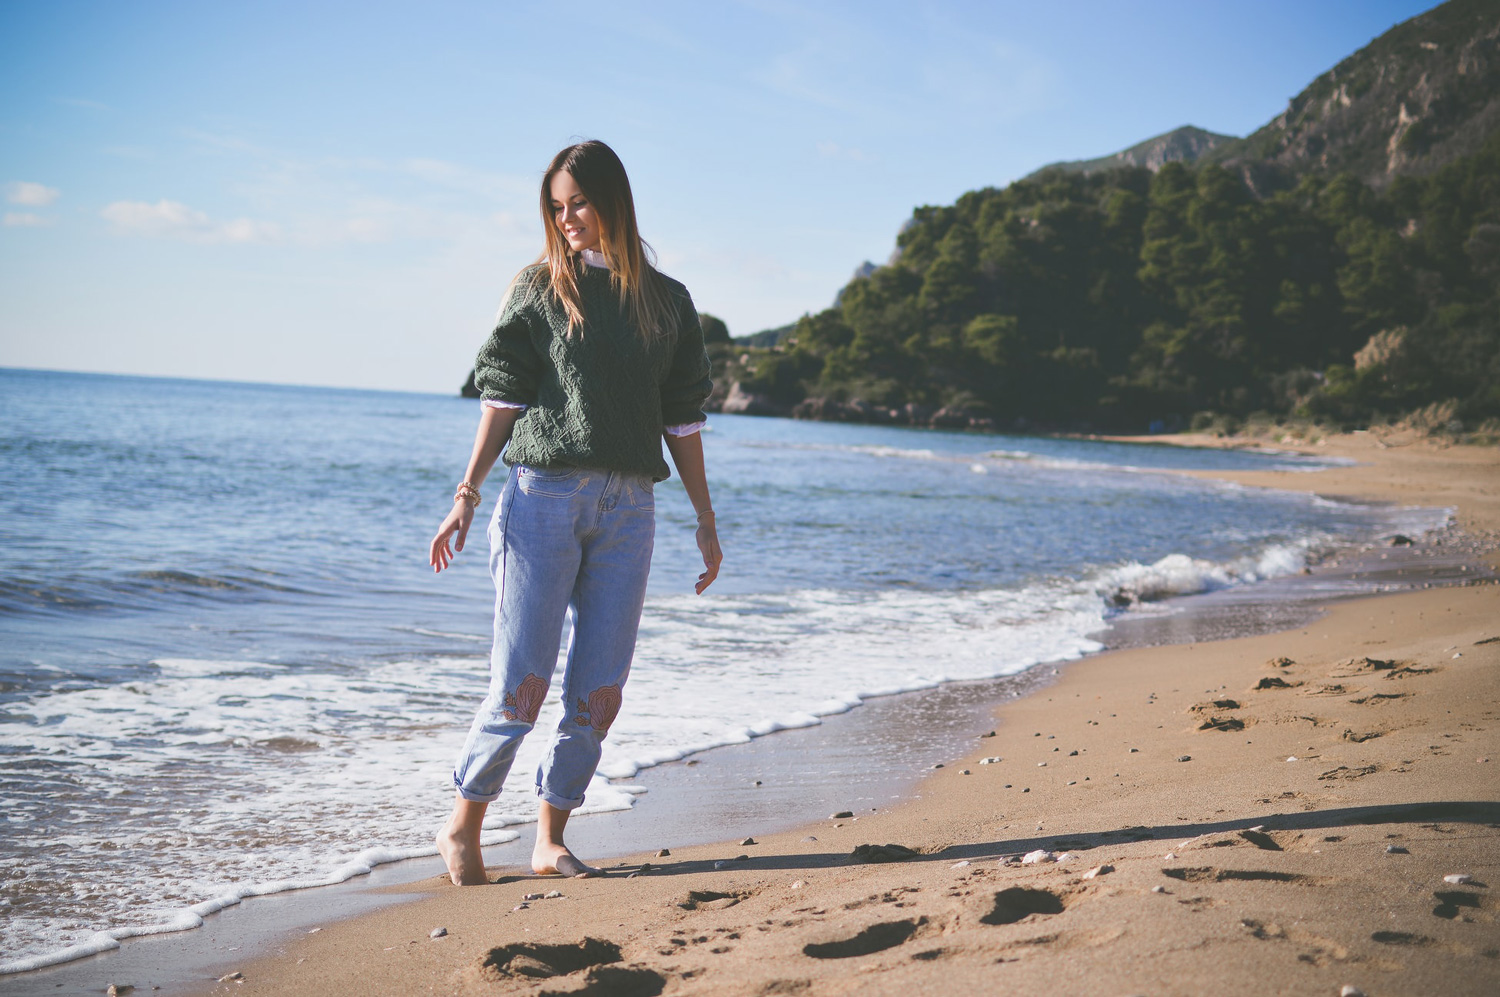 A lady with long hair strolling on a beach.